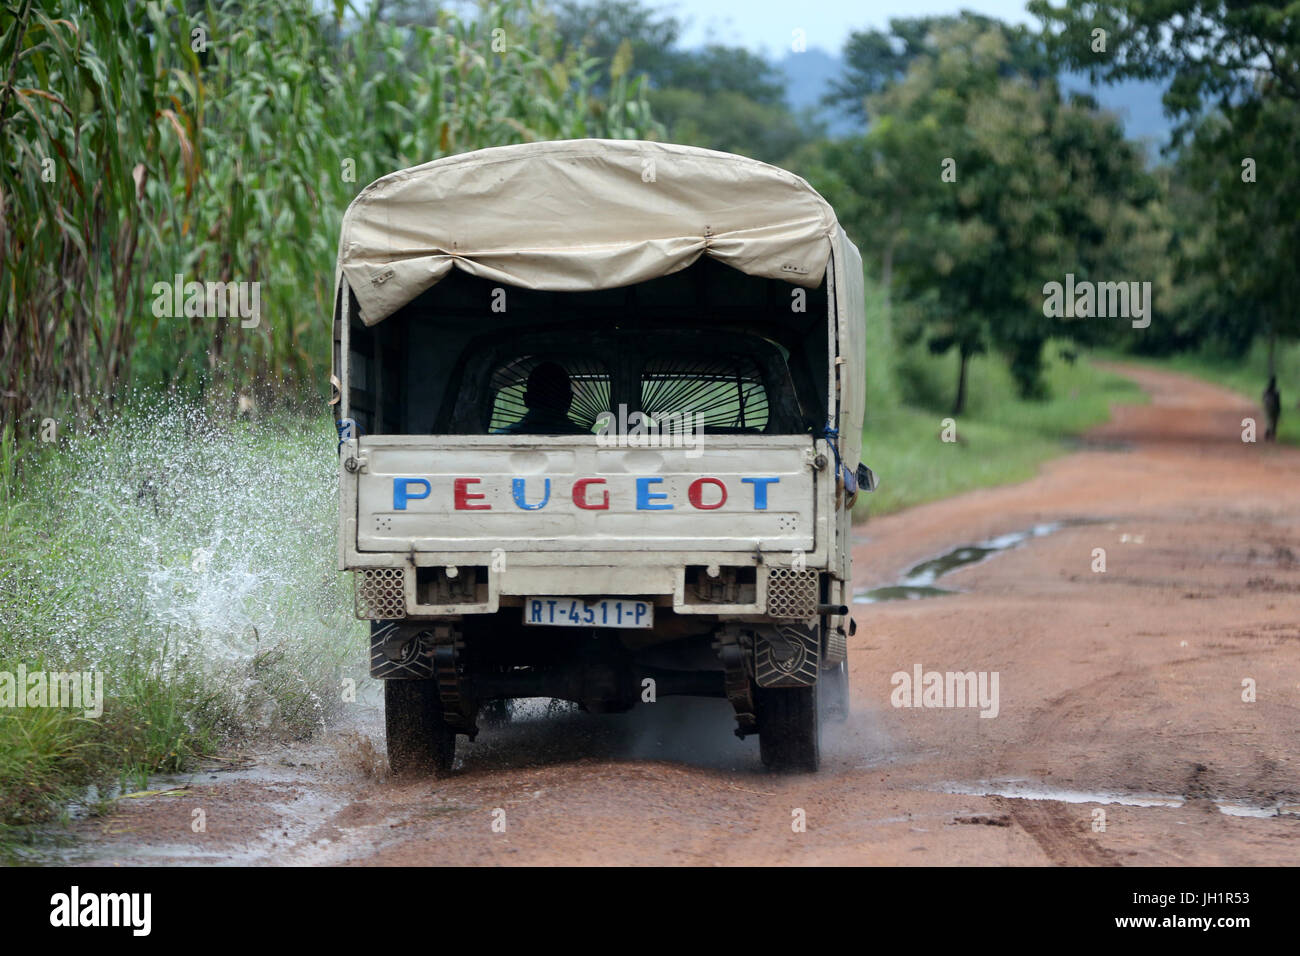 African road. Peugeot pick-up.  Togo. - Stock Image